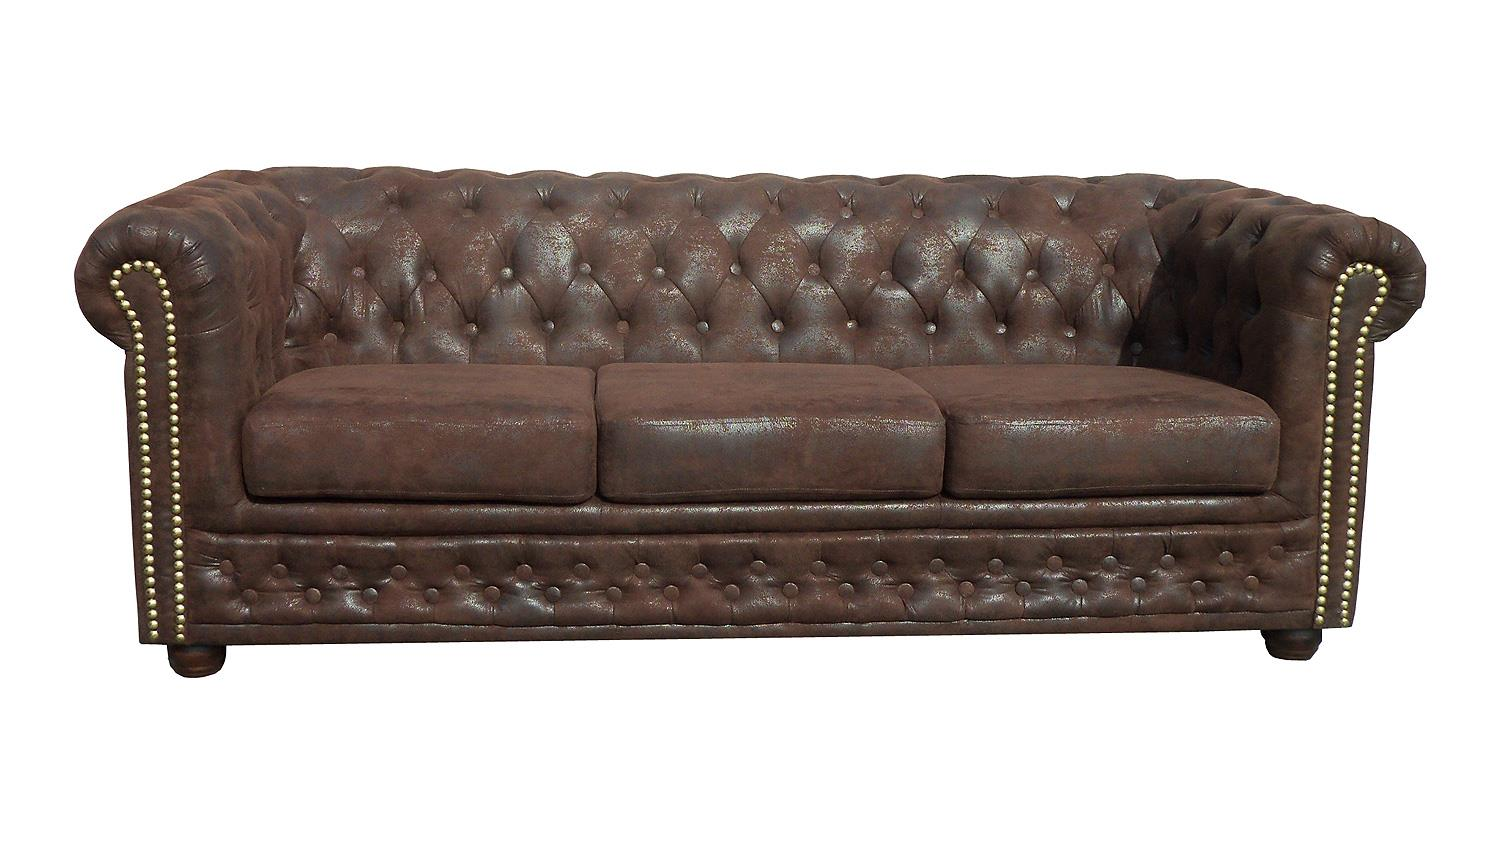 Sheffield Sessel Sheffield Sofa Interior Vintage Sofas For In Sheffield